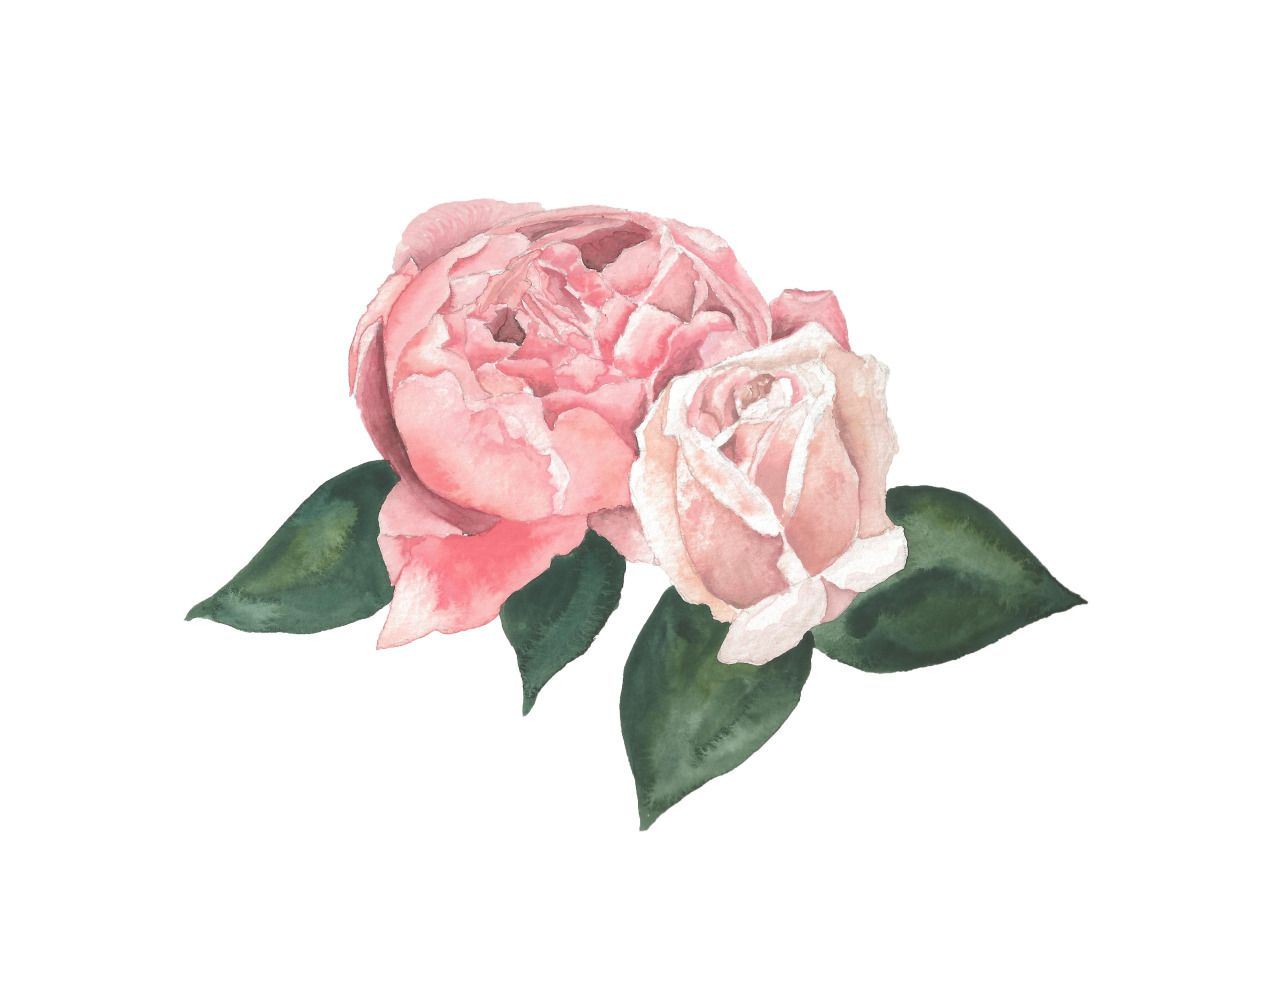 Image Result For Cute Flower Drawings Tumblr